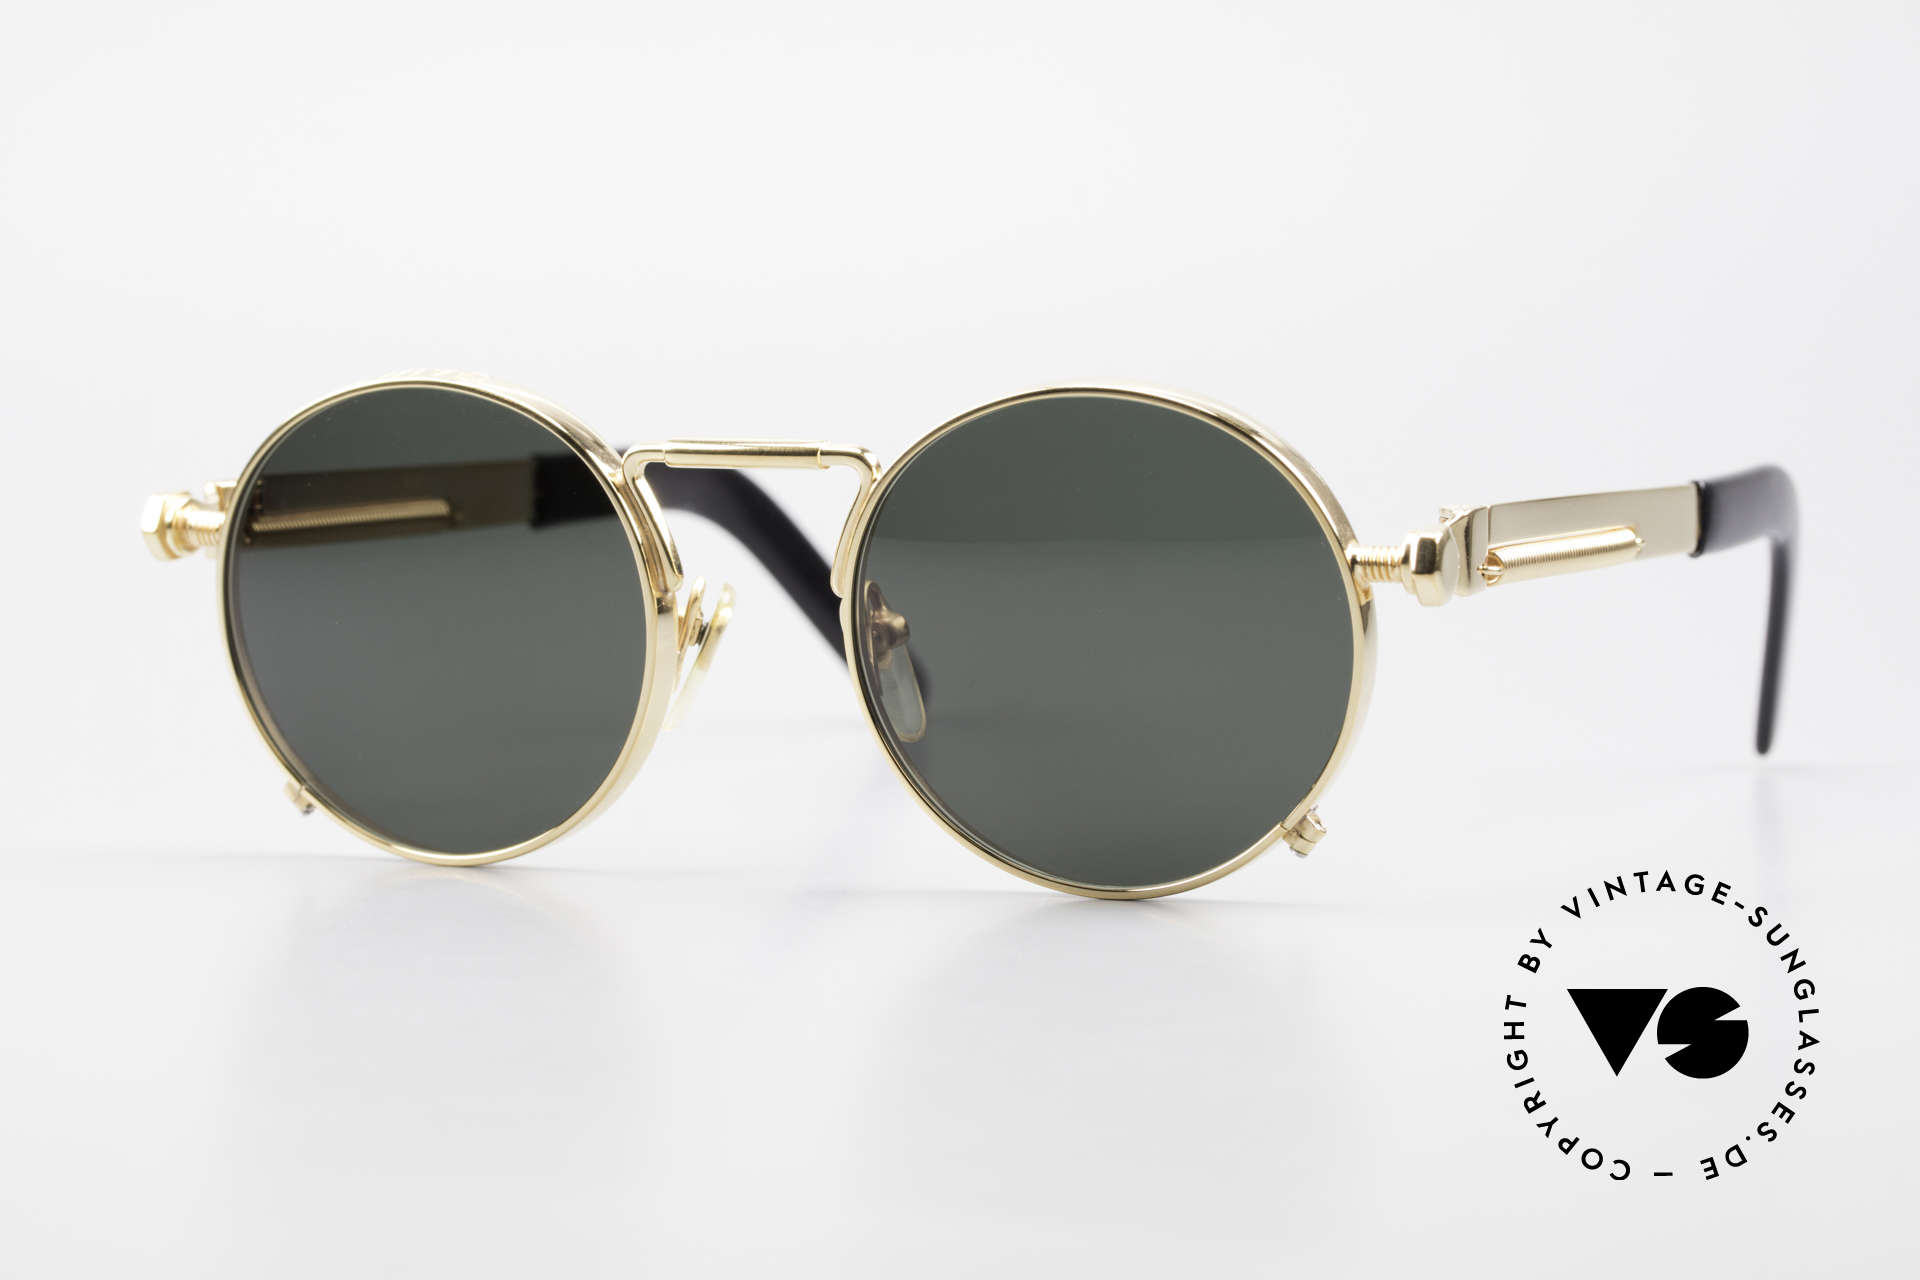 Jean Paul Gaultier 56-8171 Customized Chrome Gold, valuable and creative Jean Paul Gaultier designer shades, Made for Men and Women